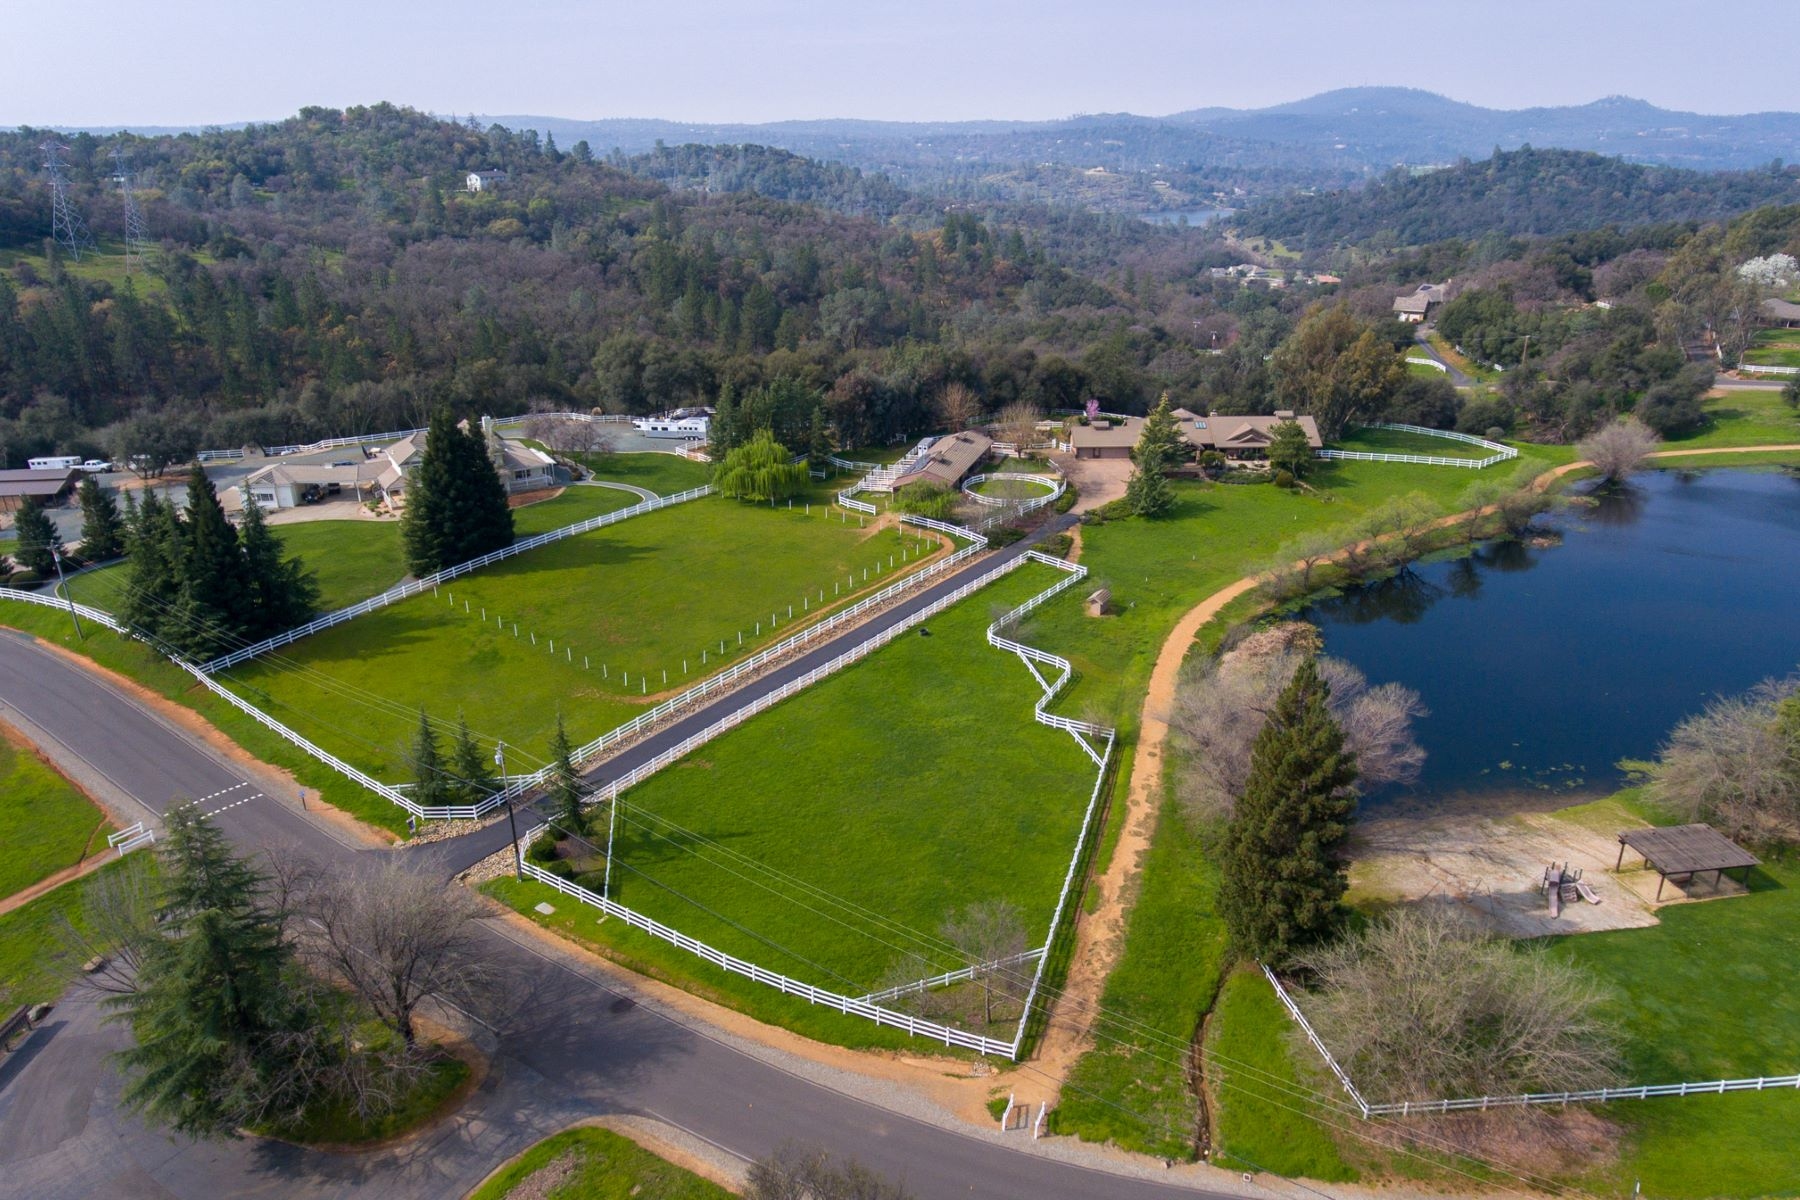 Single Family Home for Sale at 2948 Stagecoach Rd, Placerville, CA 95667 2948 Stagecoach Road Placerville, California, 95667 United States